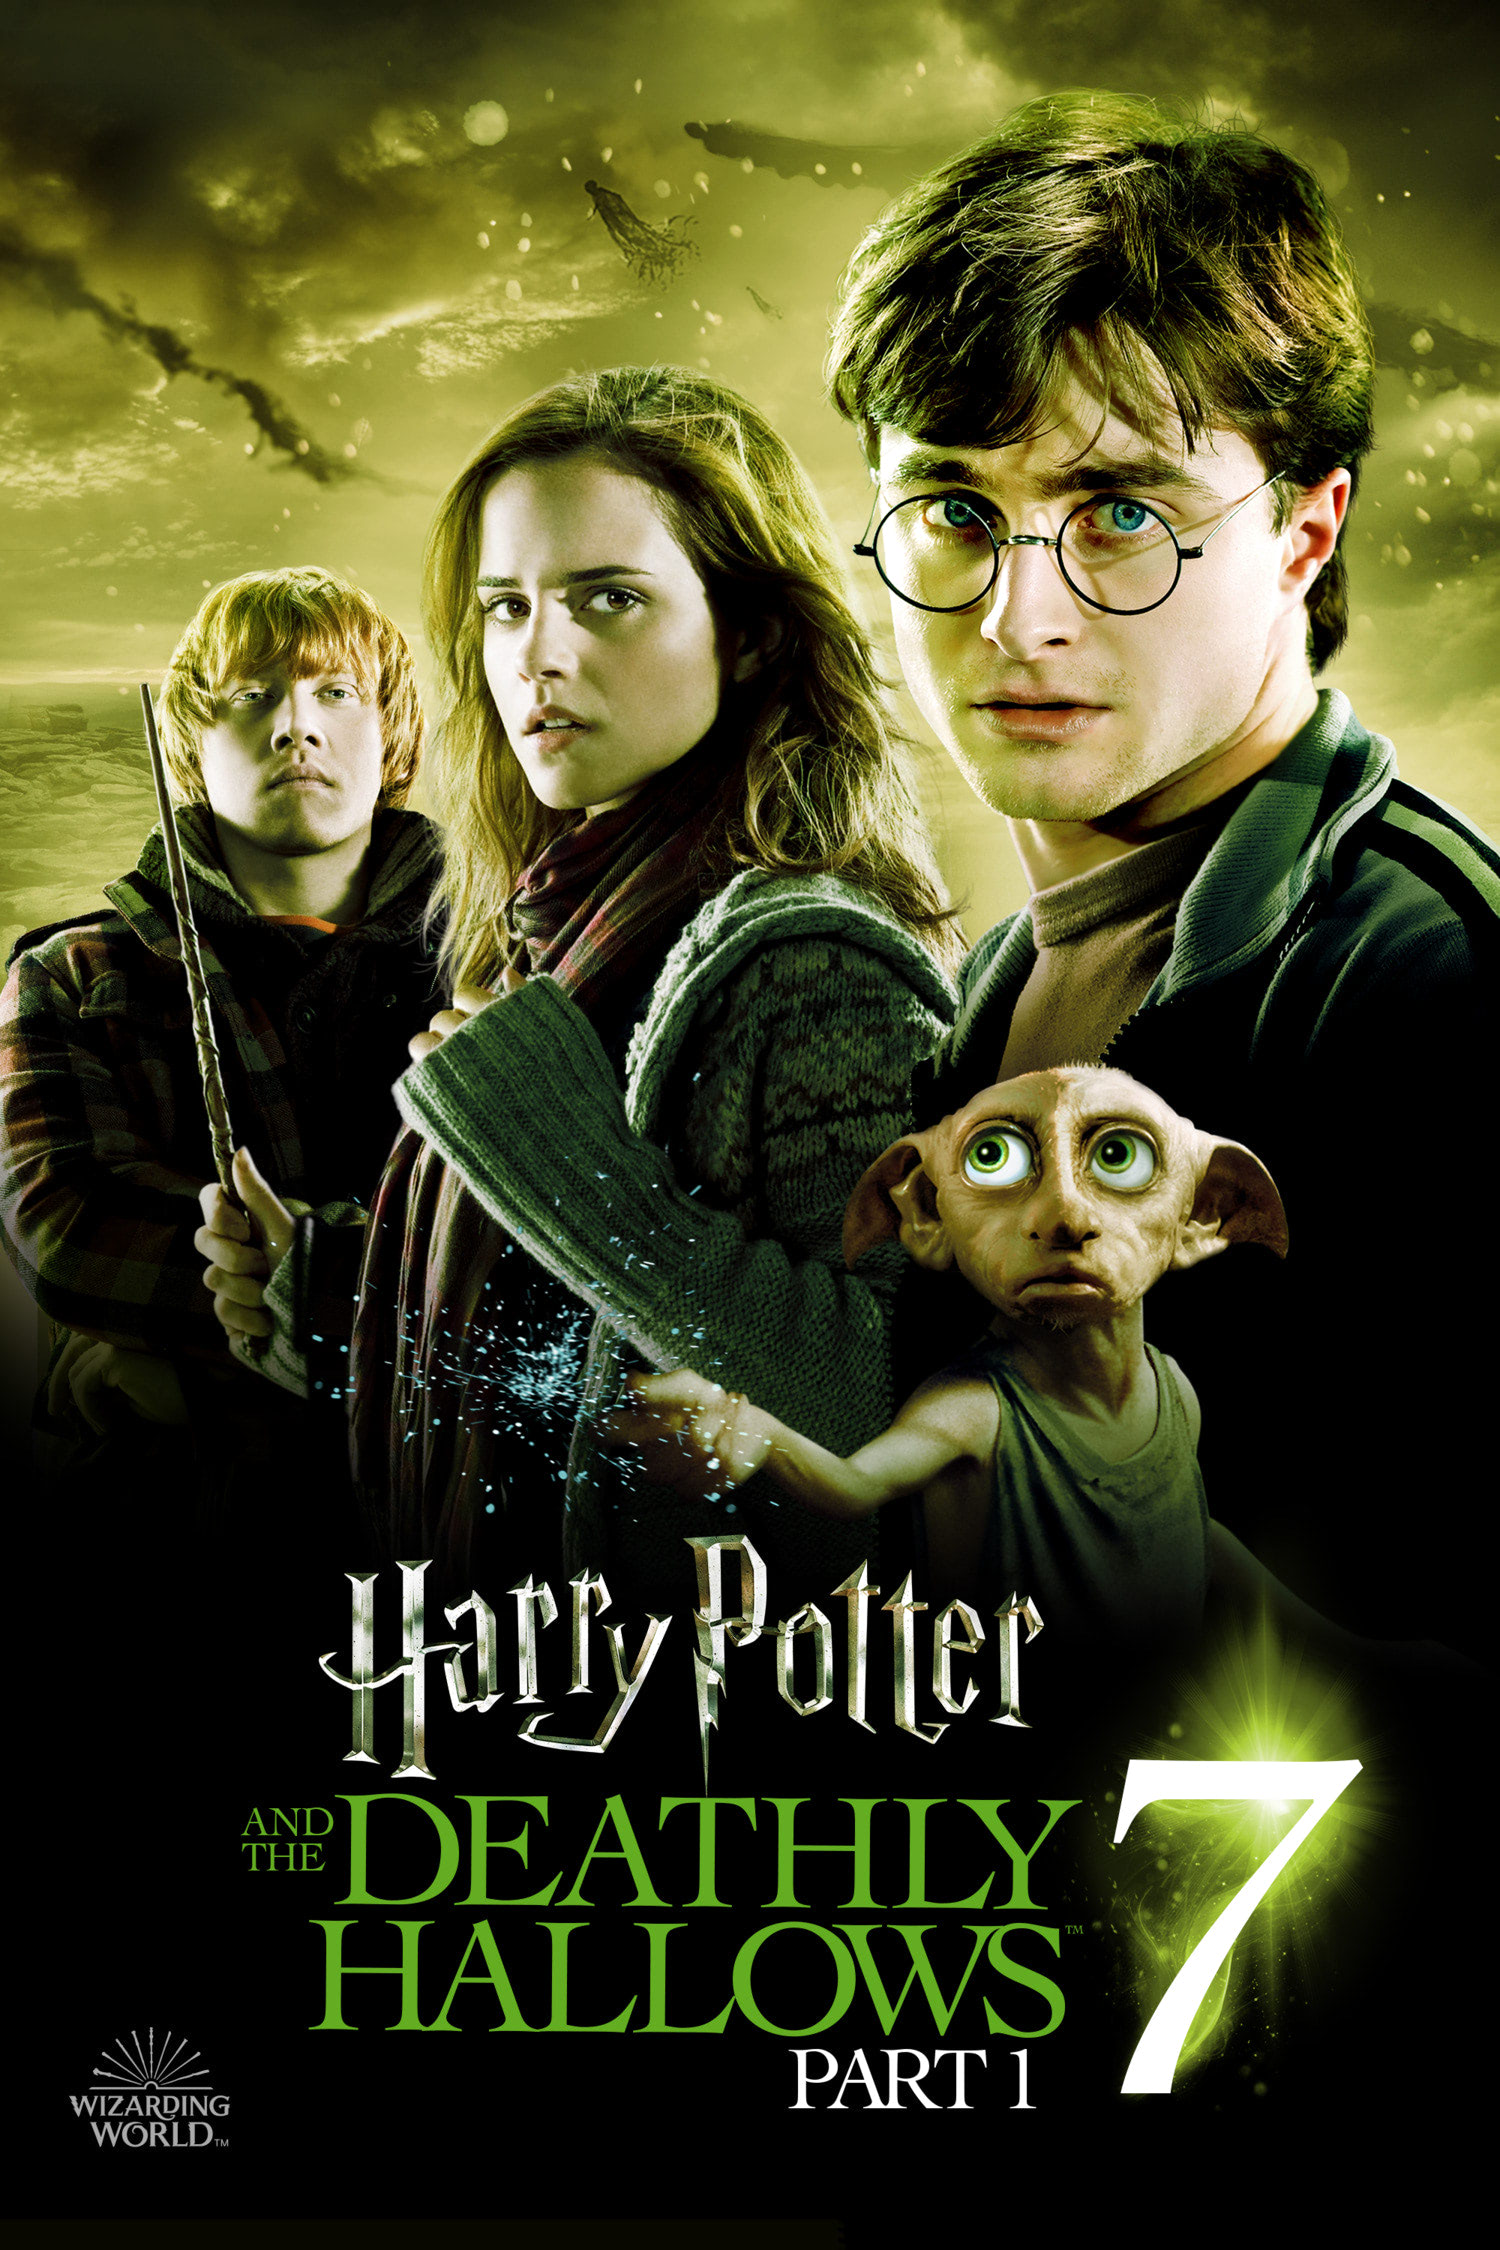 'Deathly Hallows: Part 1' Wizarding World poster